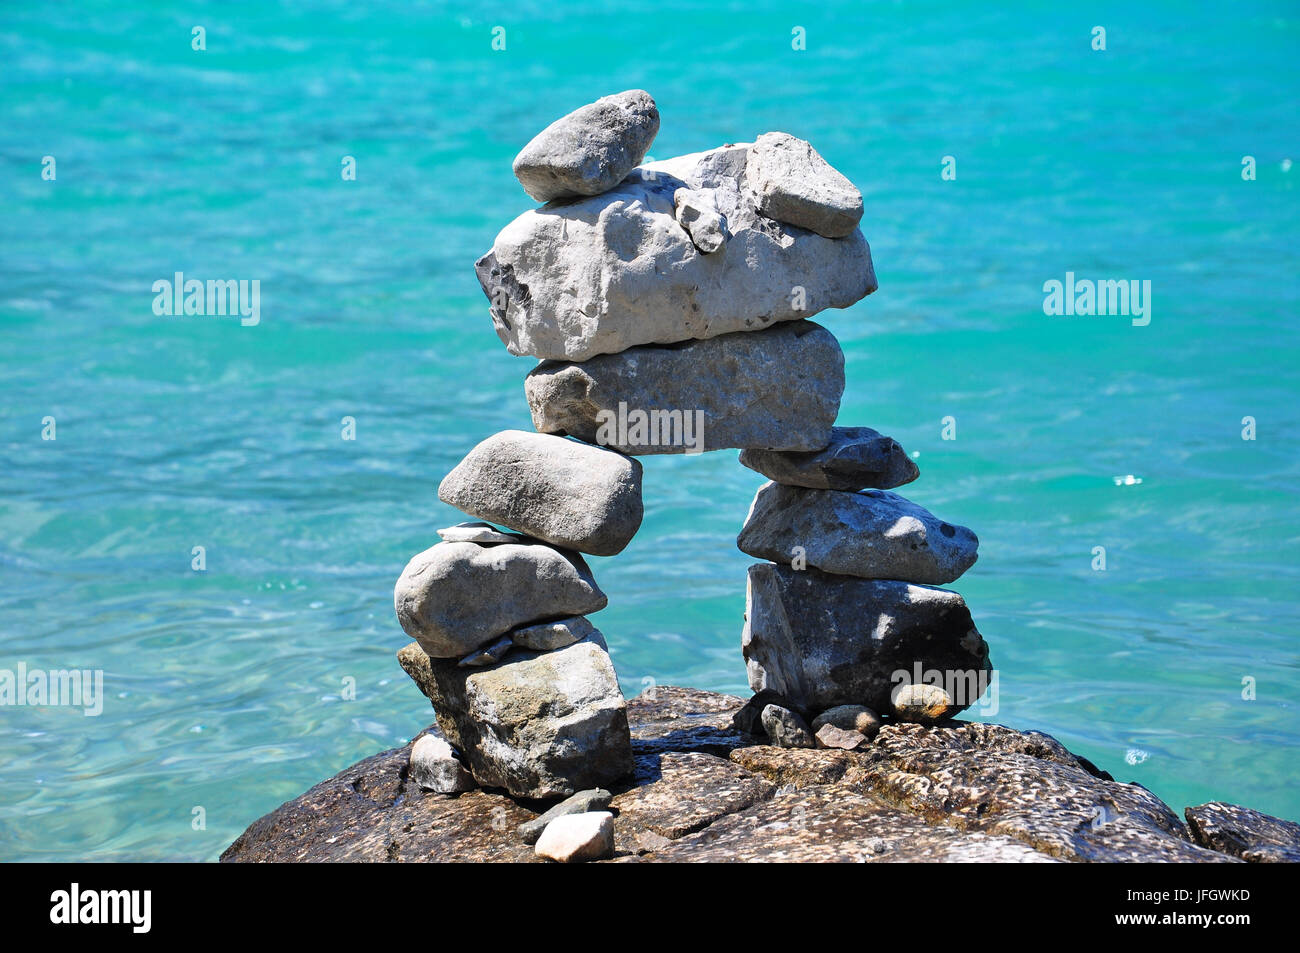 Germany, Bavaria, alpine upland, Walchensee, shore, stone tower, - Stock Image